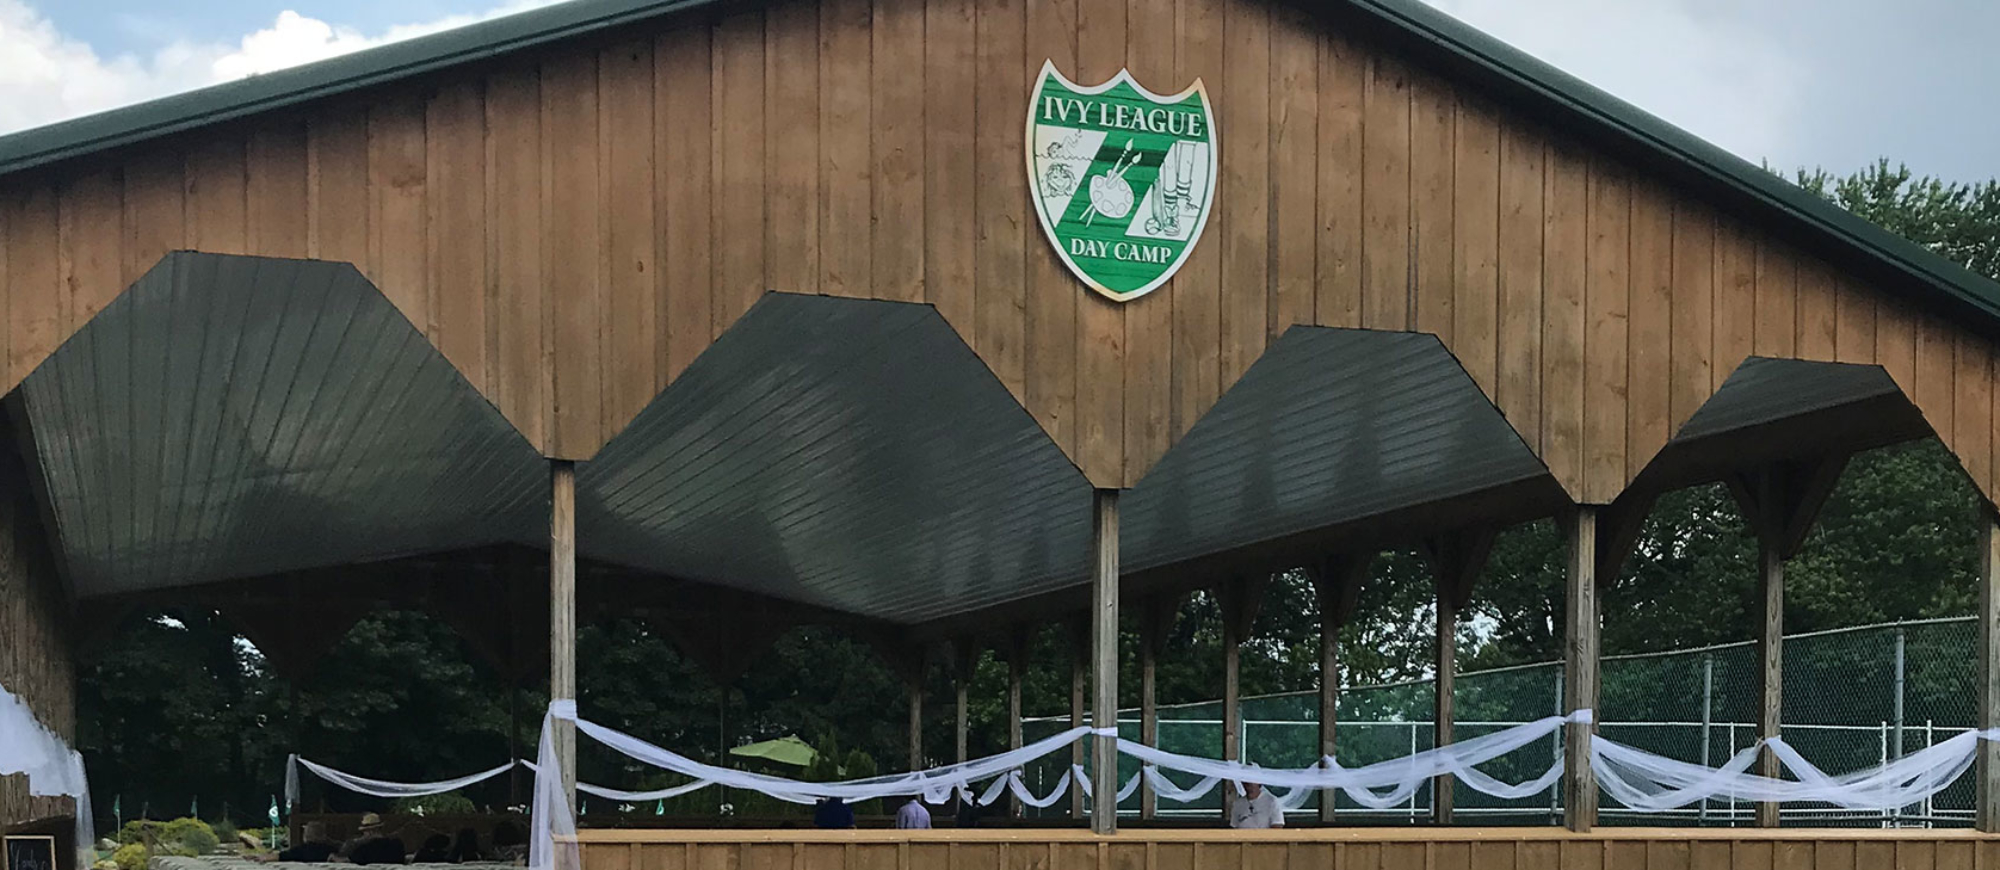 Events at Ivy League Day Camp